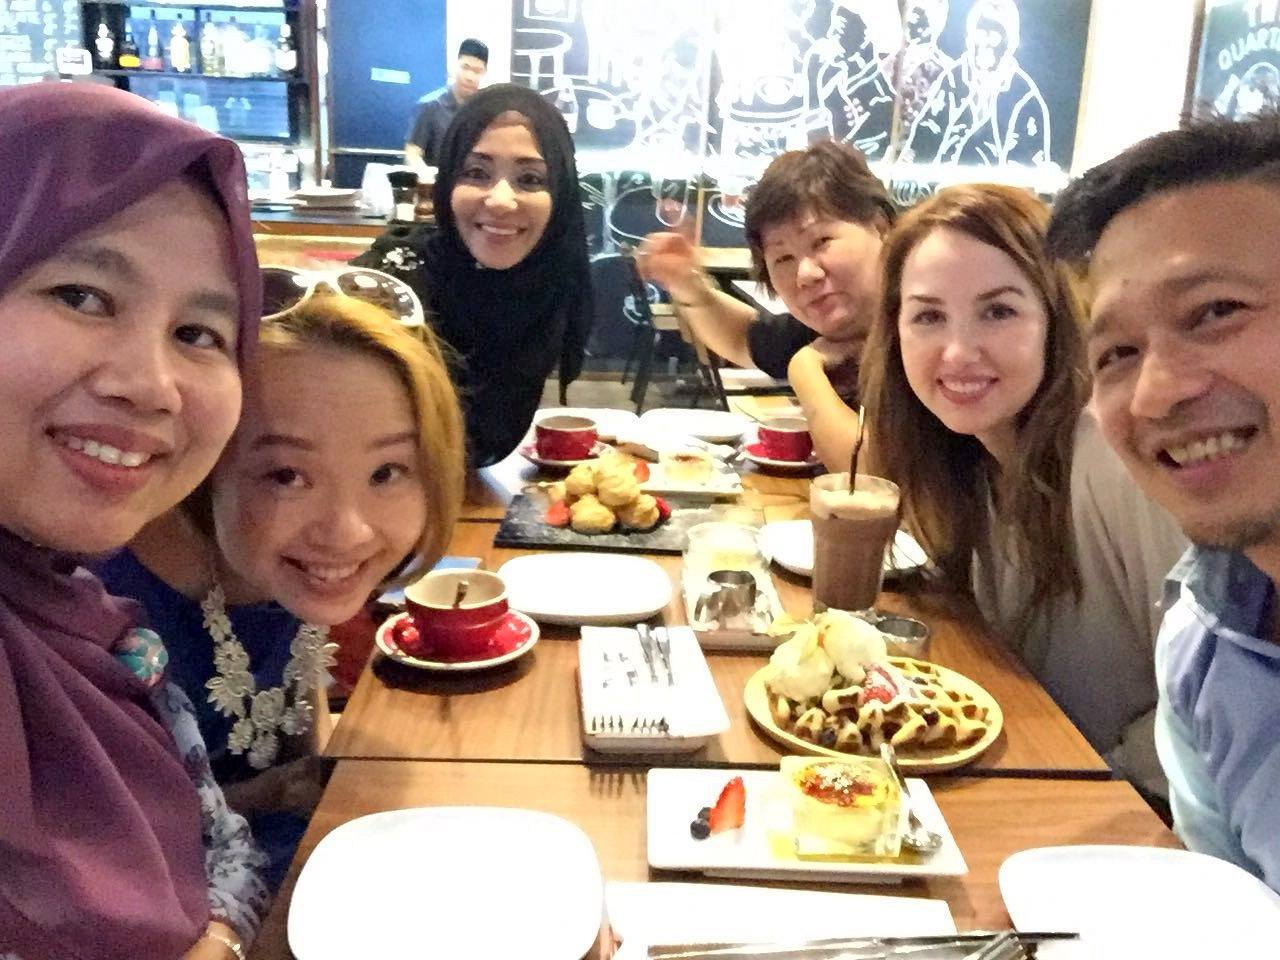 Singapore with dear friends made through the Fulbright Distinguished Awards in Teaching Program.